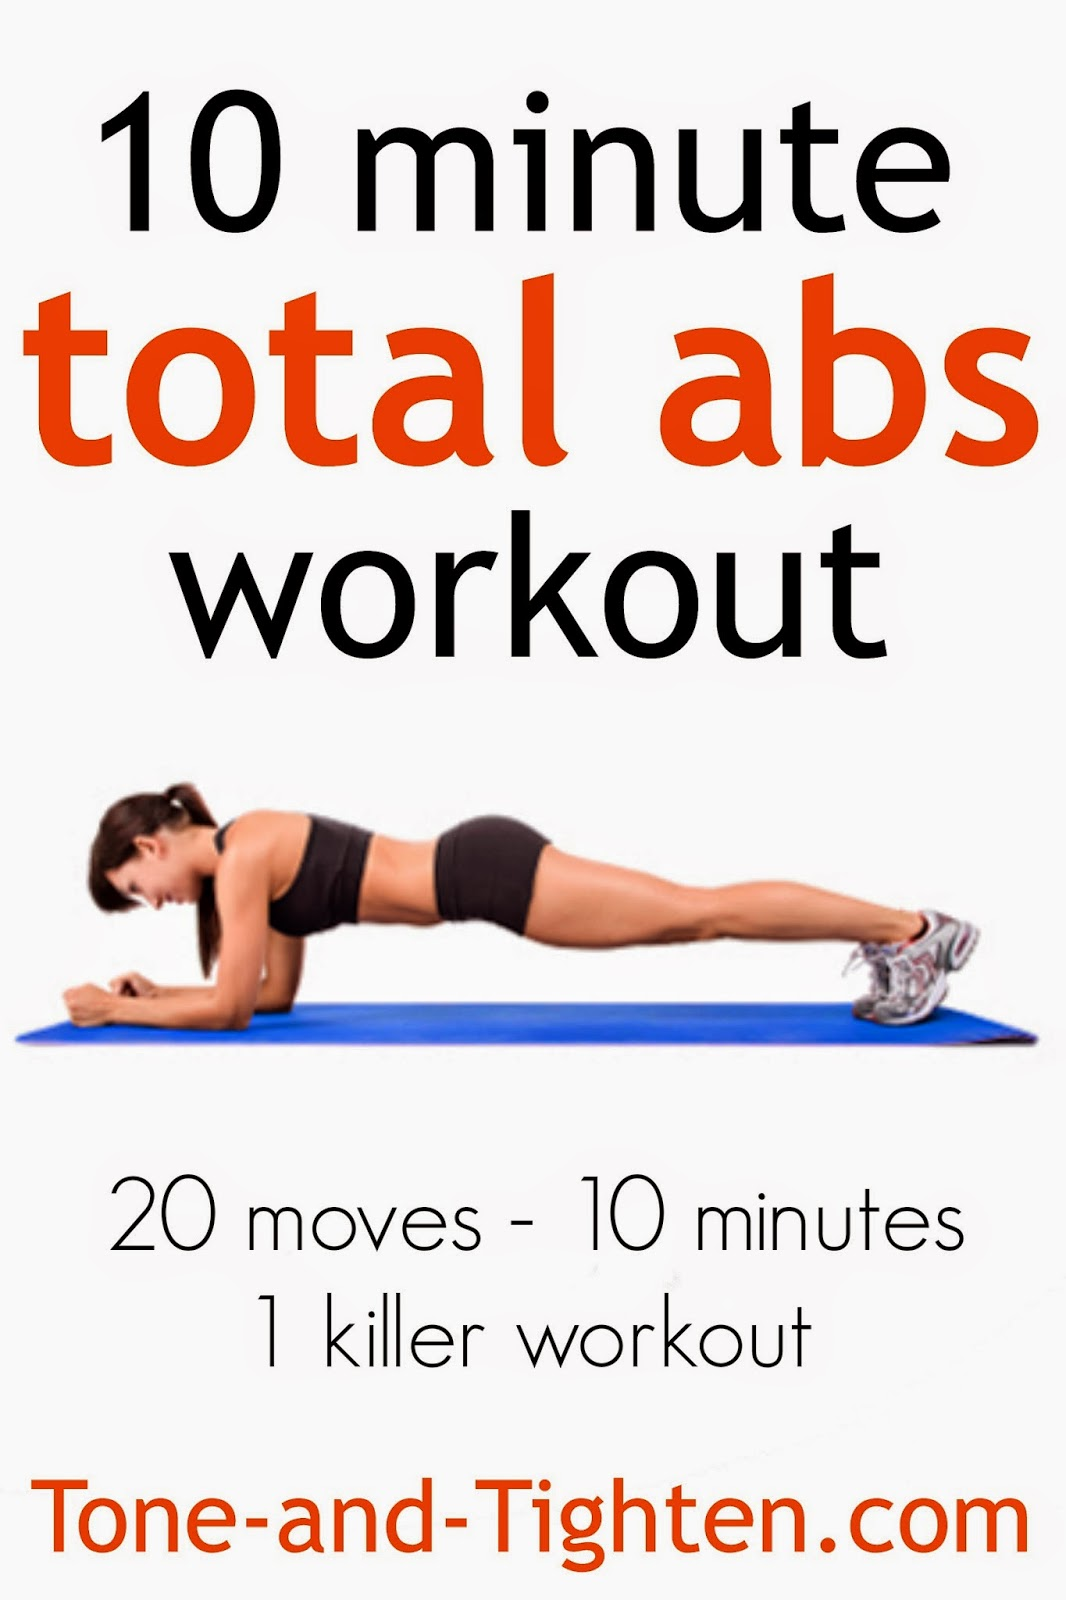 10 Minute Total Abs Workout – 20 moves in only 10 minutes! | Tone ...